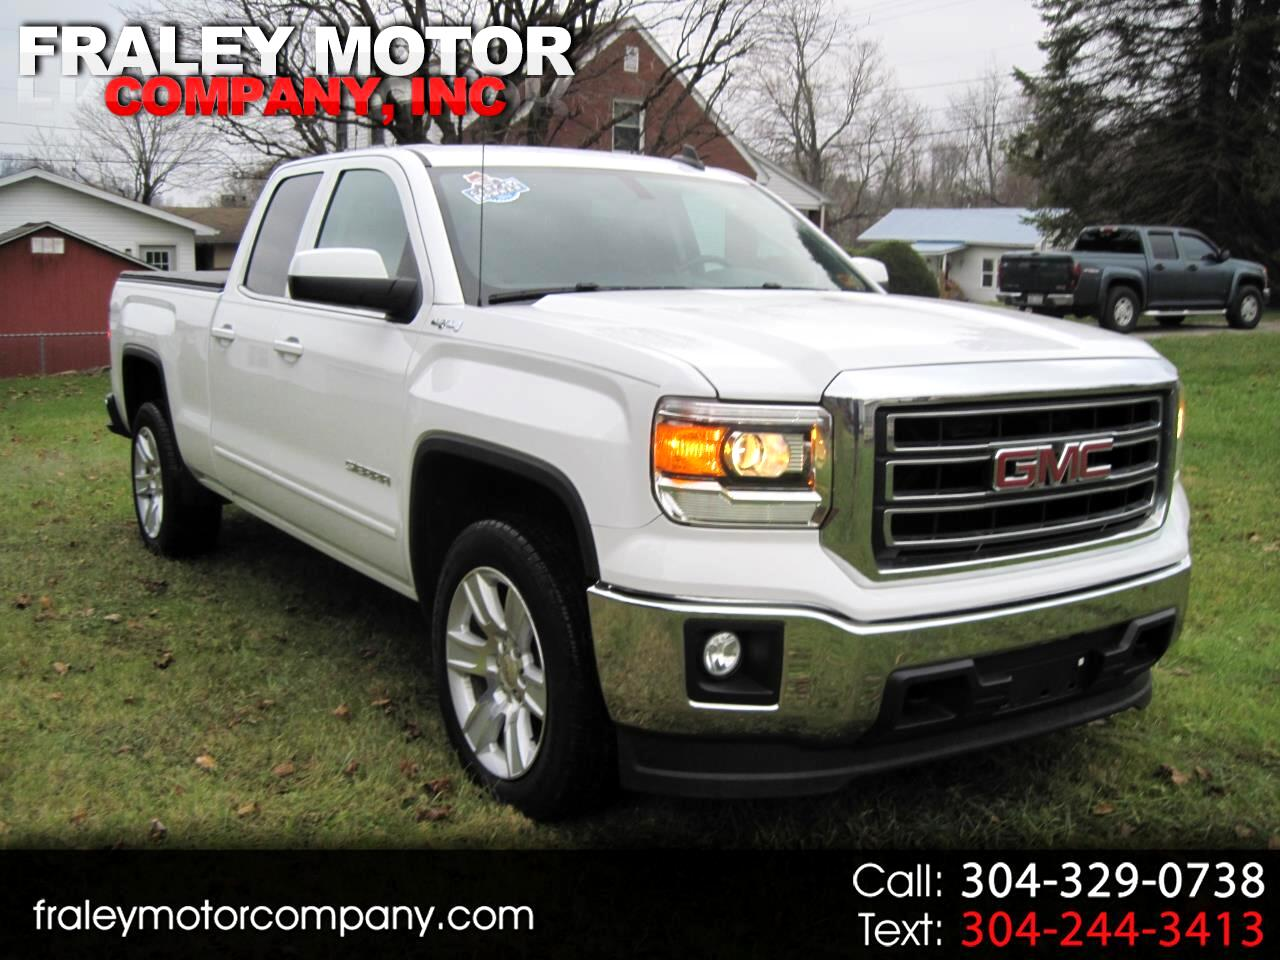 Used Gmc Trucks >> Used Gmc Pickup Trucks 4x4s For Sale Nearby In Wv Pa And Md The